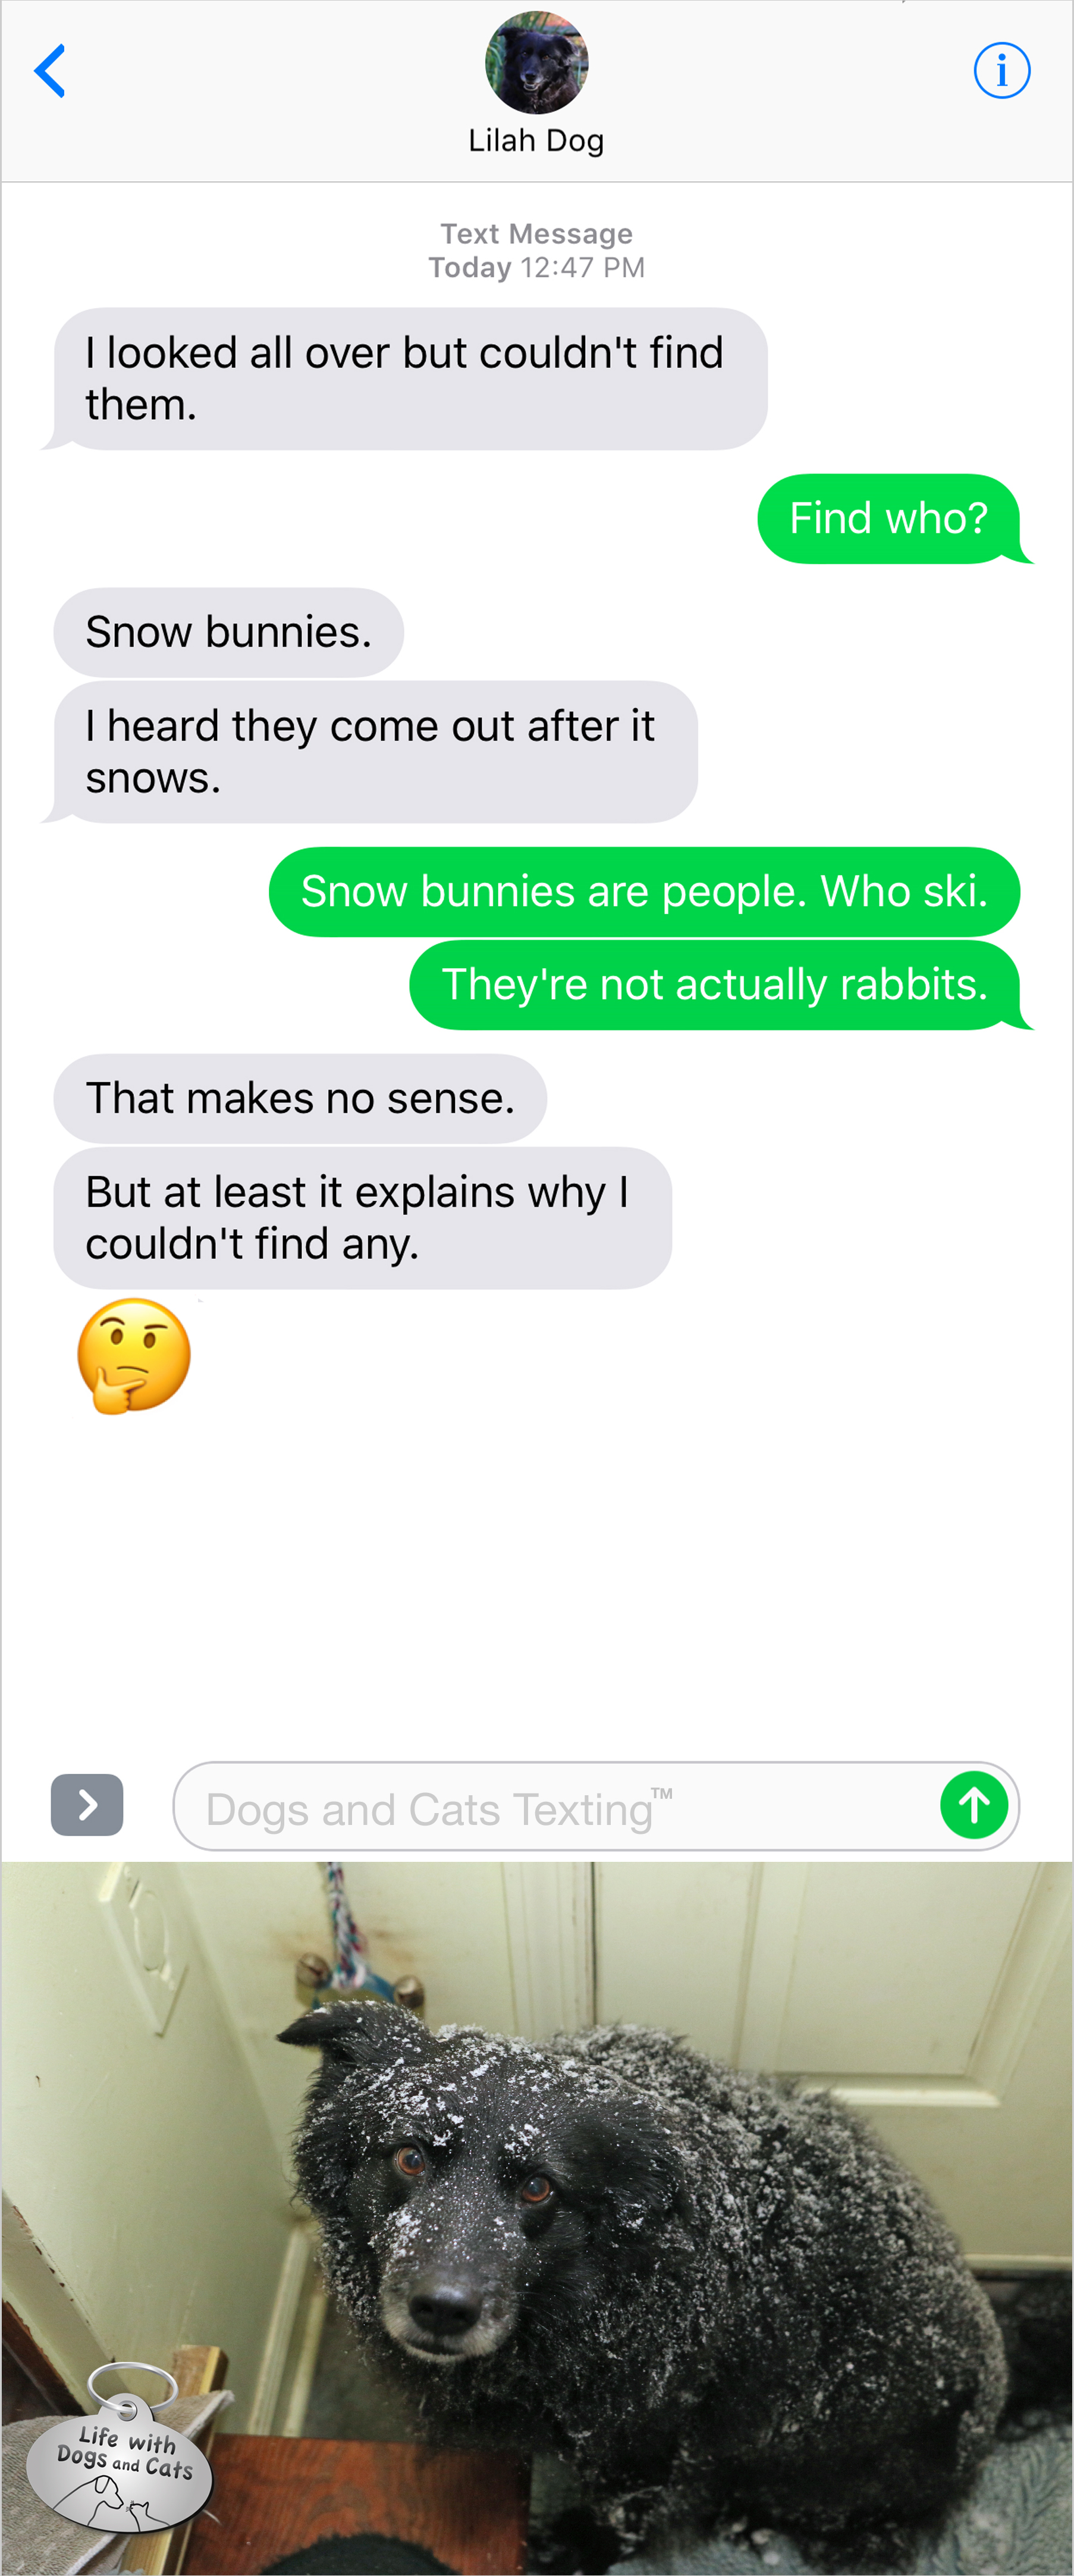 Text From Dog: I looked all over but couldn't find them. Me: Who? Dog: Snow bunnies. I heard they come out after it snows. Me: Snow bunnies are people. Who ski. They're not actually rabbits. Dog: That makes no sense. But at least it explains why I couldn't find any.